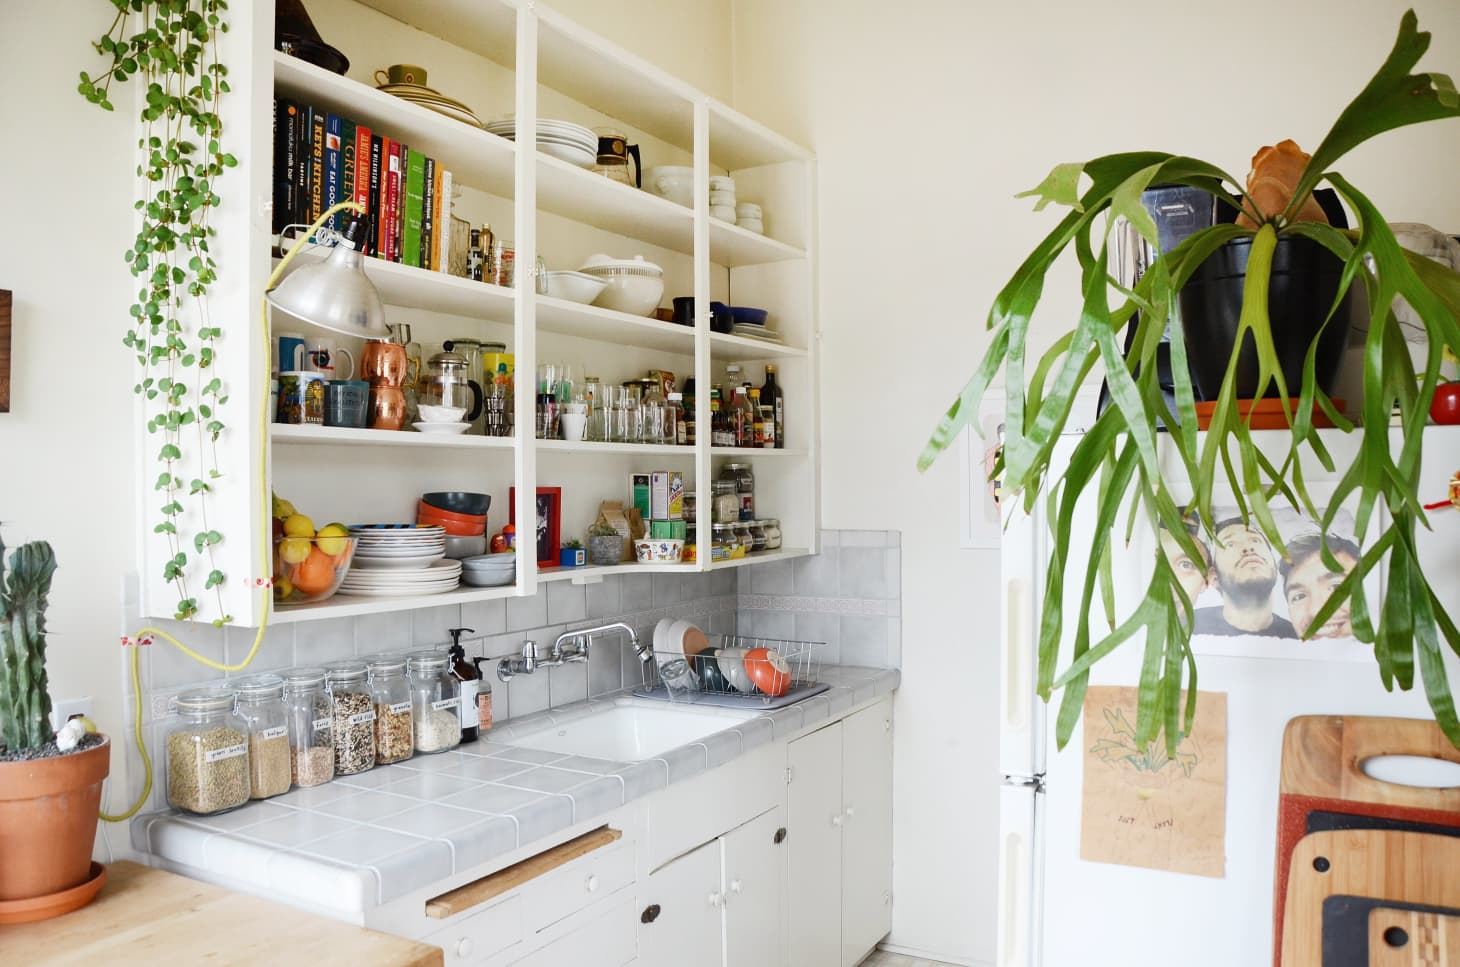 5 Things That Make A Small Kitchen Look Bigger